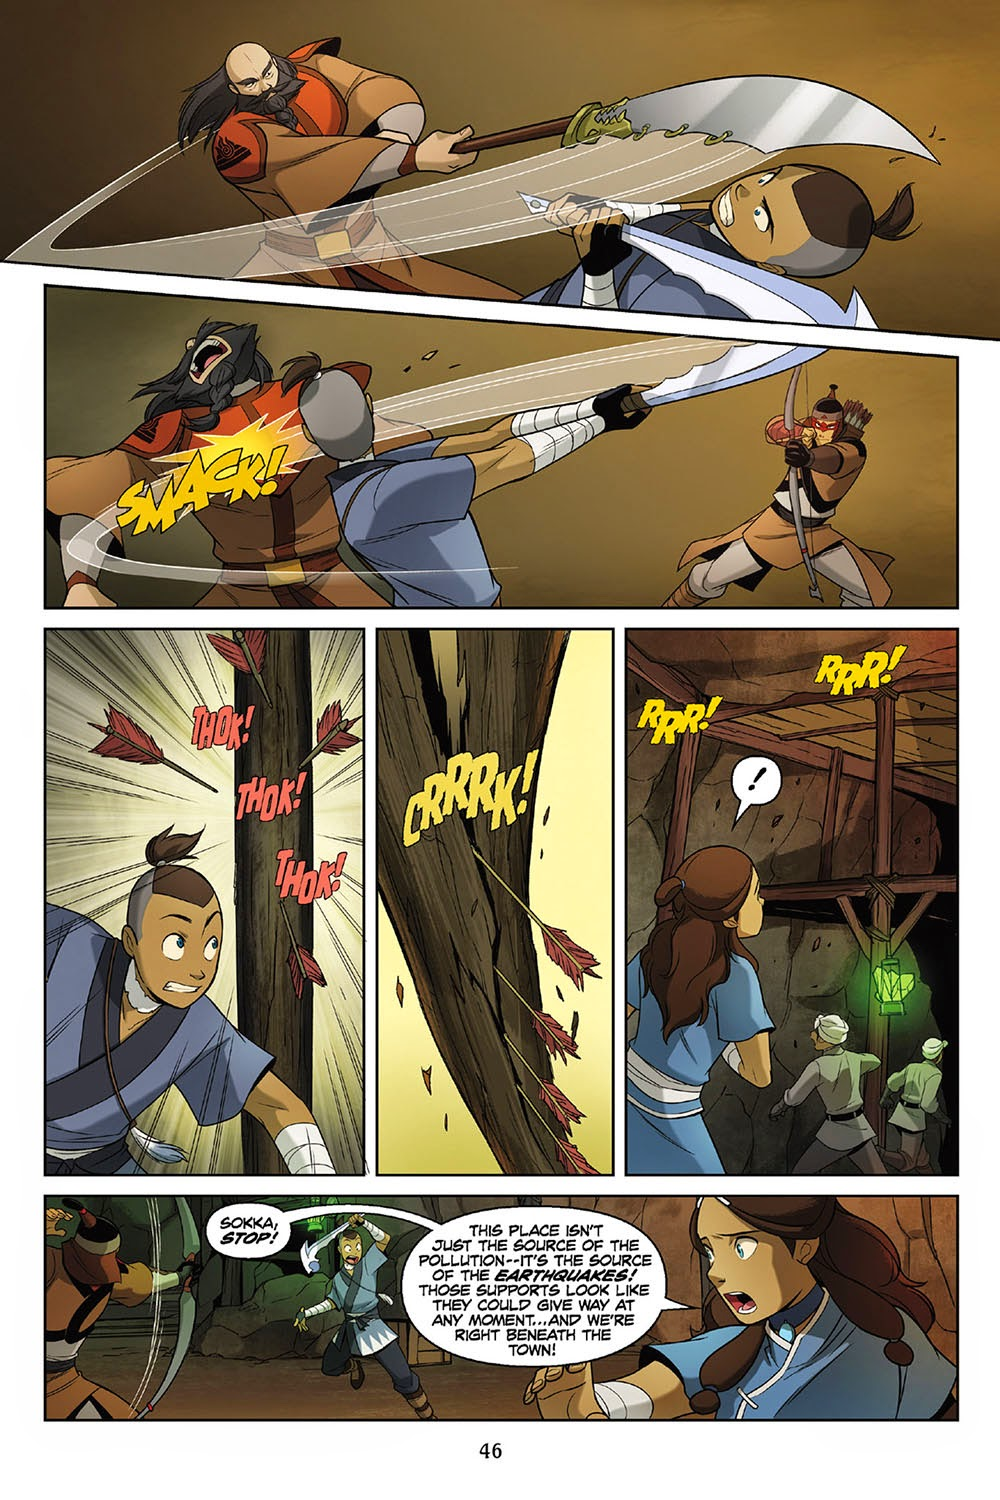 And Sokka was able to avoid multiple arrows from Vachir while fighting the Rough Rhino mercanary: Kahchi.